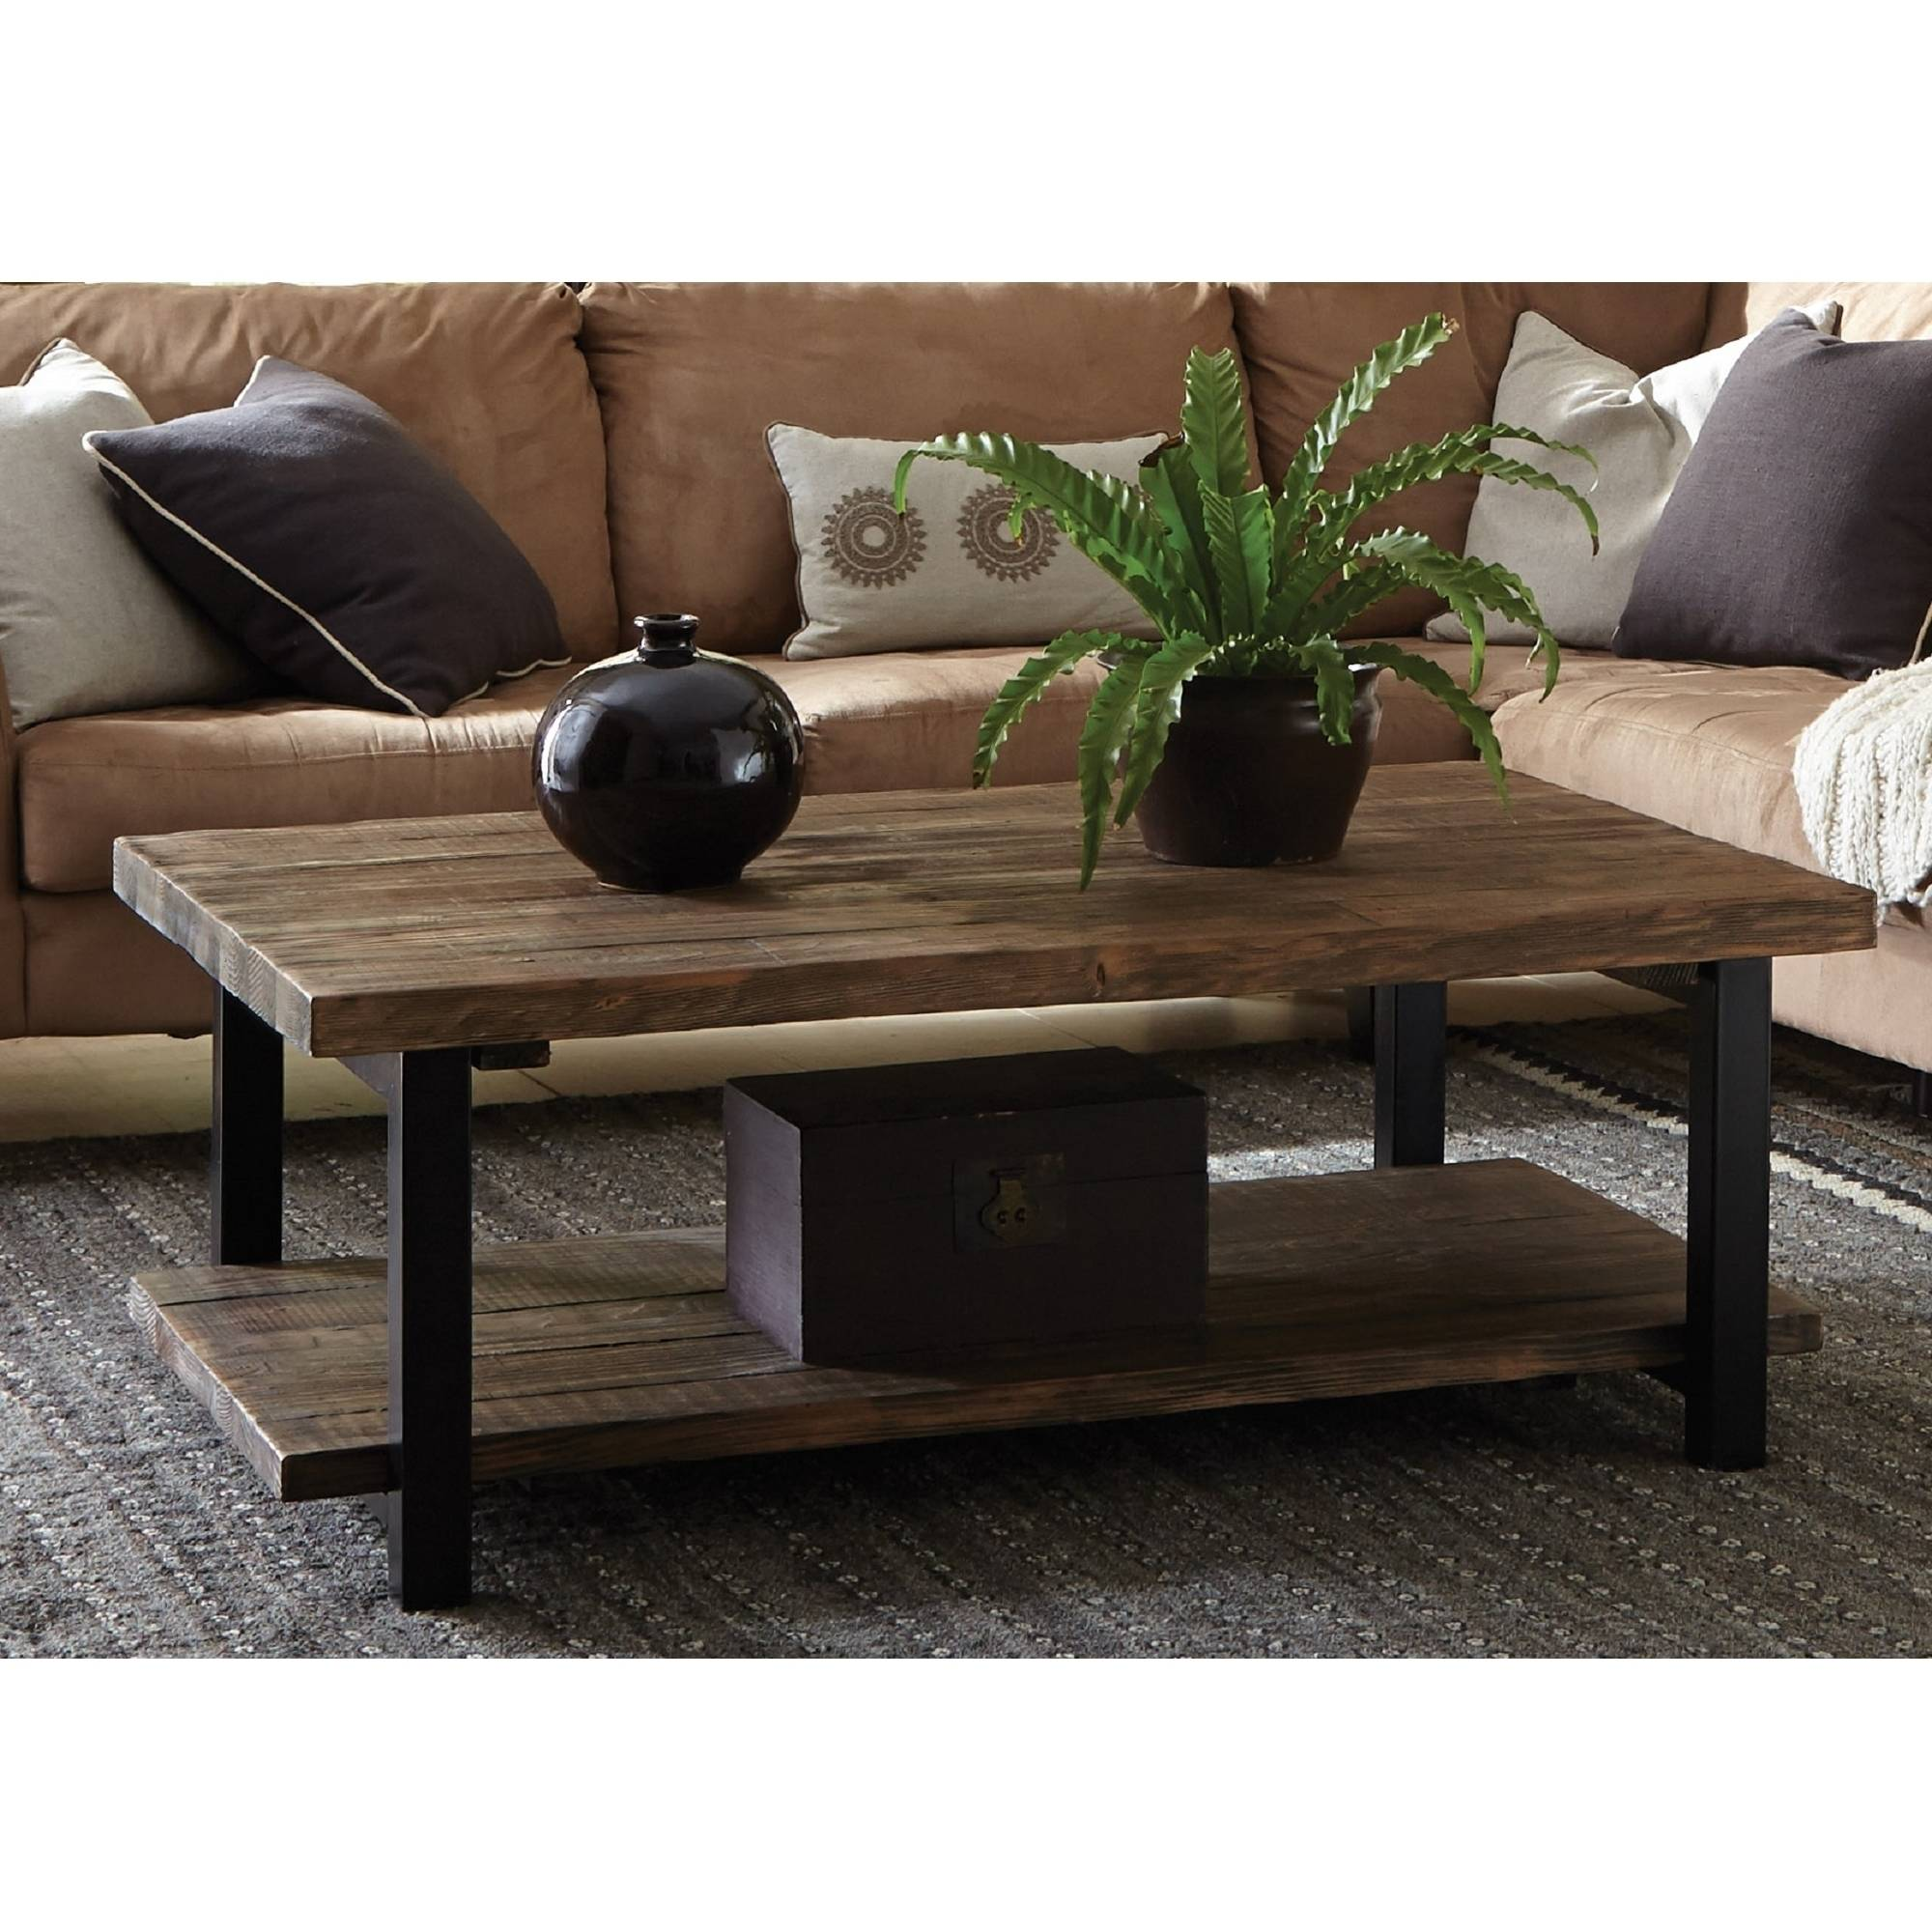 Pomona Coffee Table Rustic Natural Walmart